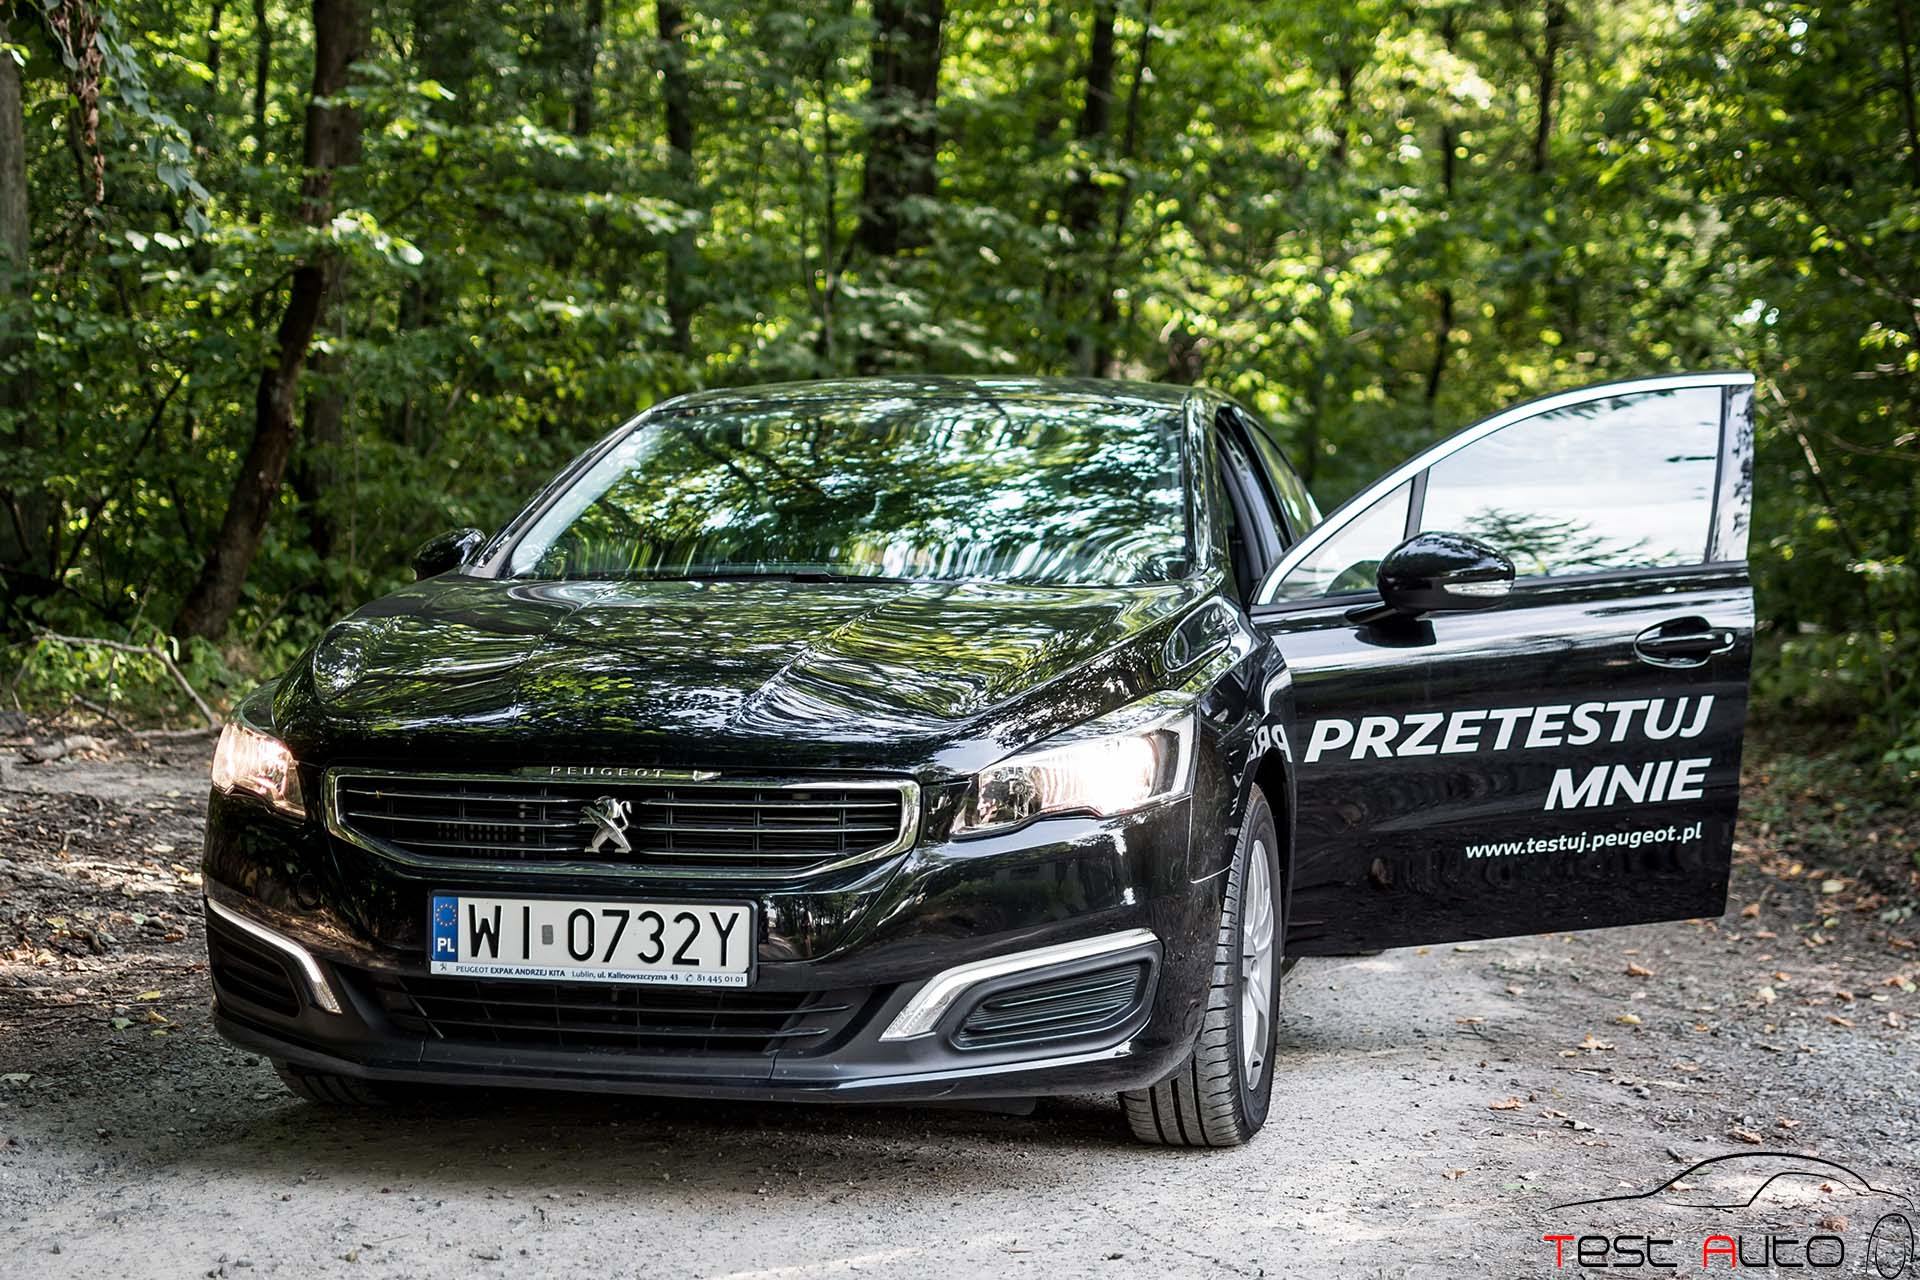 2015 peugeot 508 1 6 e thp 165 km s s fot jakub baltyn 28 test auto. Black Bedroom Furniture Sets. Home Design Ideas